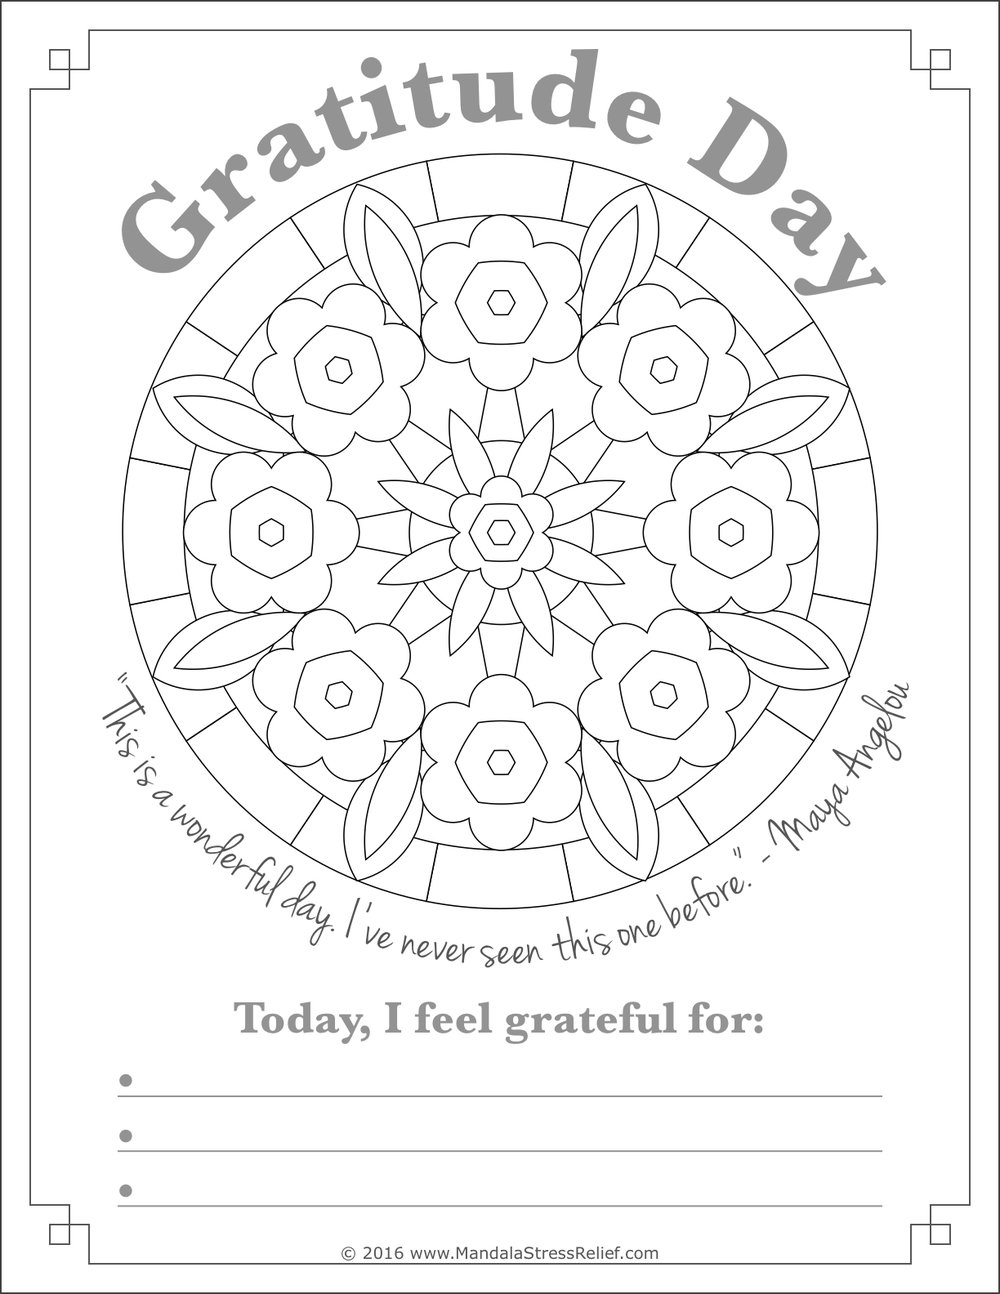 Download this free colouring poster   (letter-size) for World Gratitude Day. Includes a mandala to colour plus room to write three things you feel grateful for.